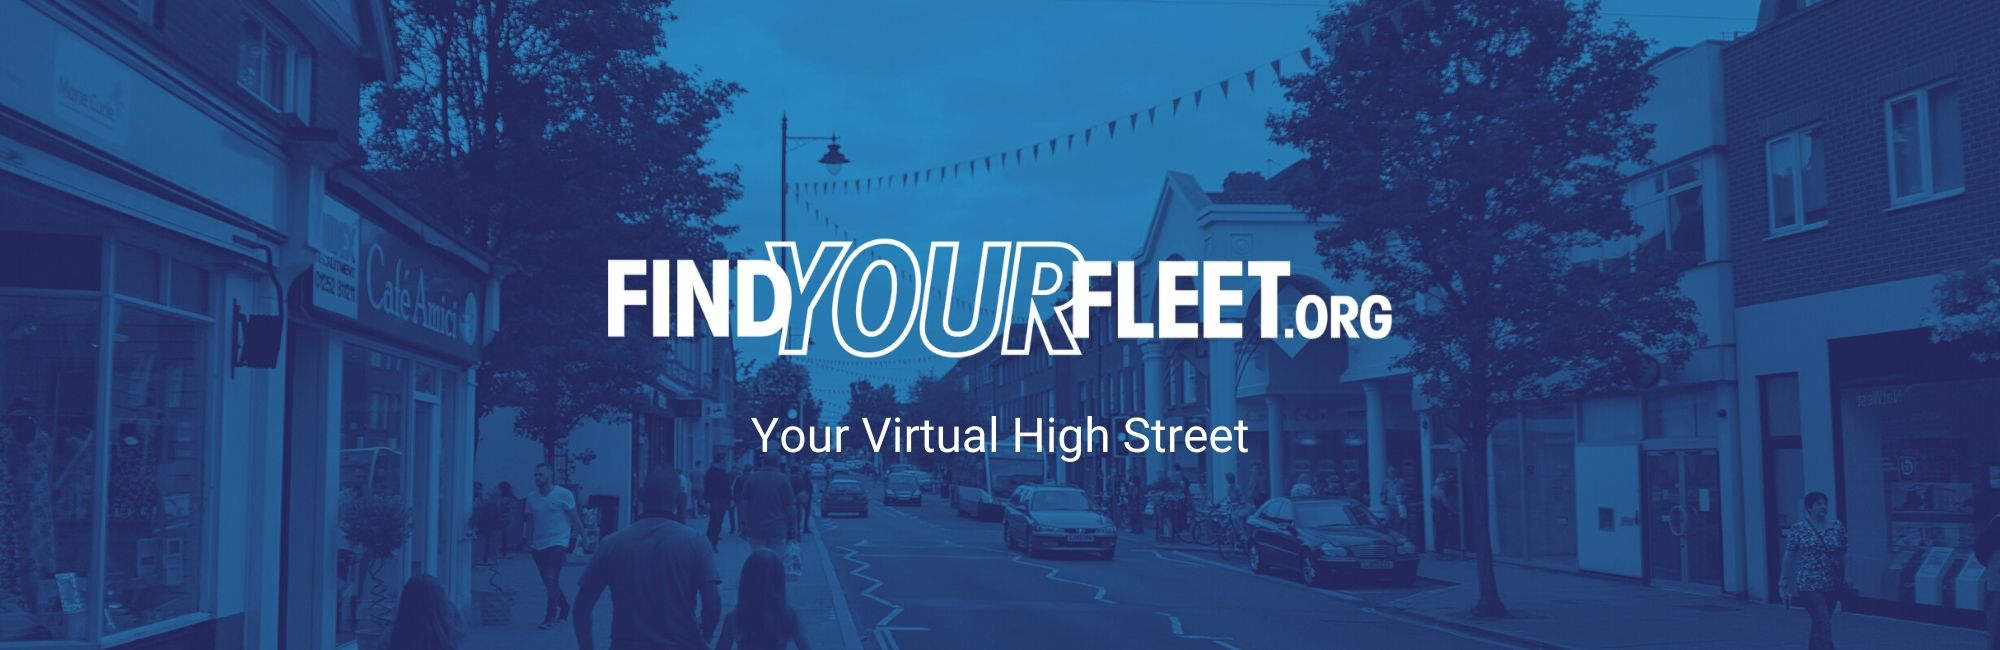 Fleet Hampshire your Virtual High Street